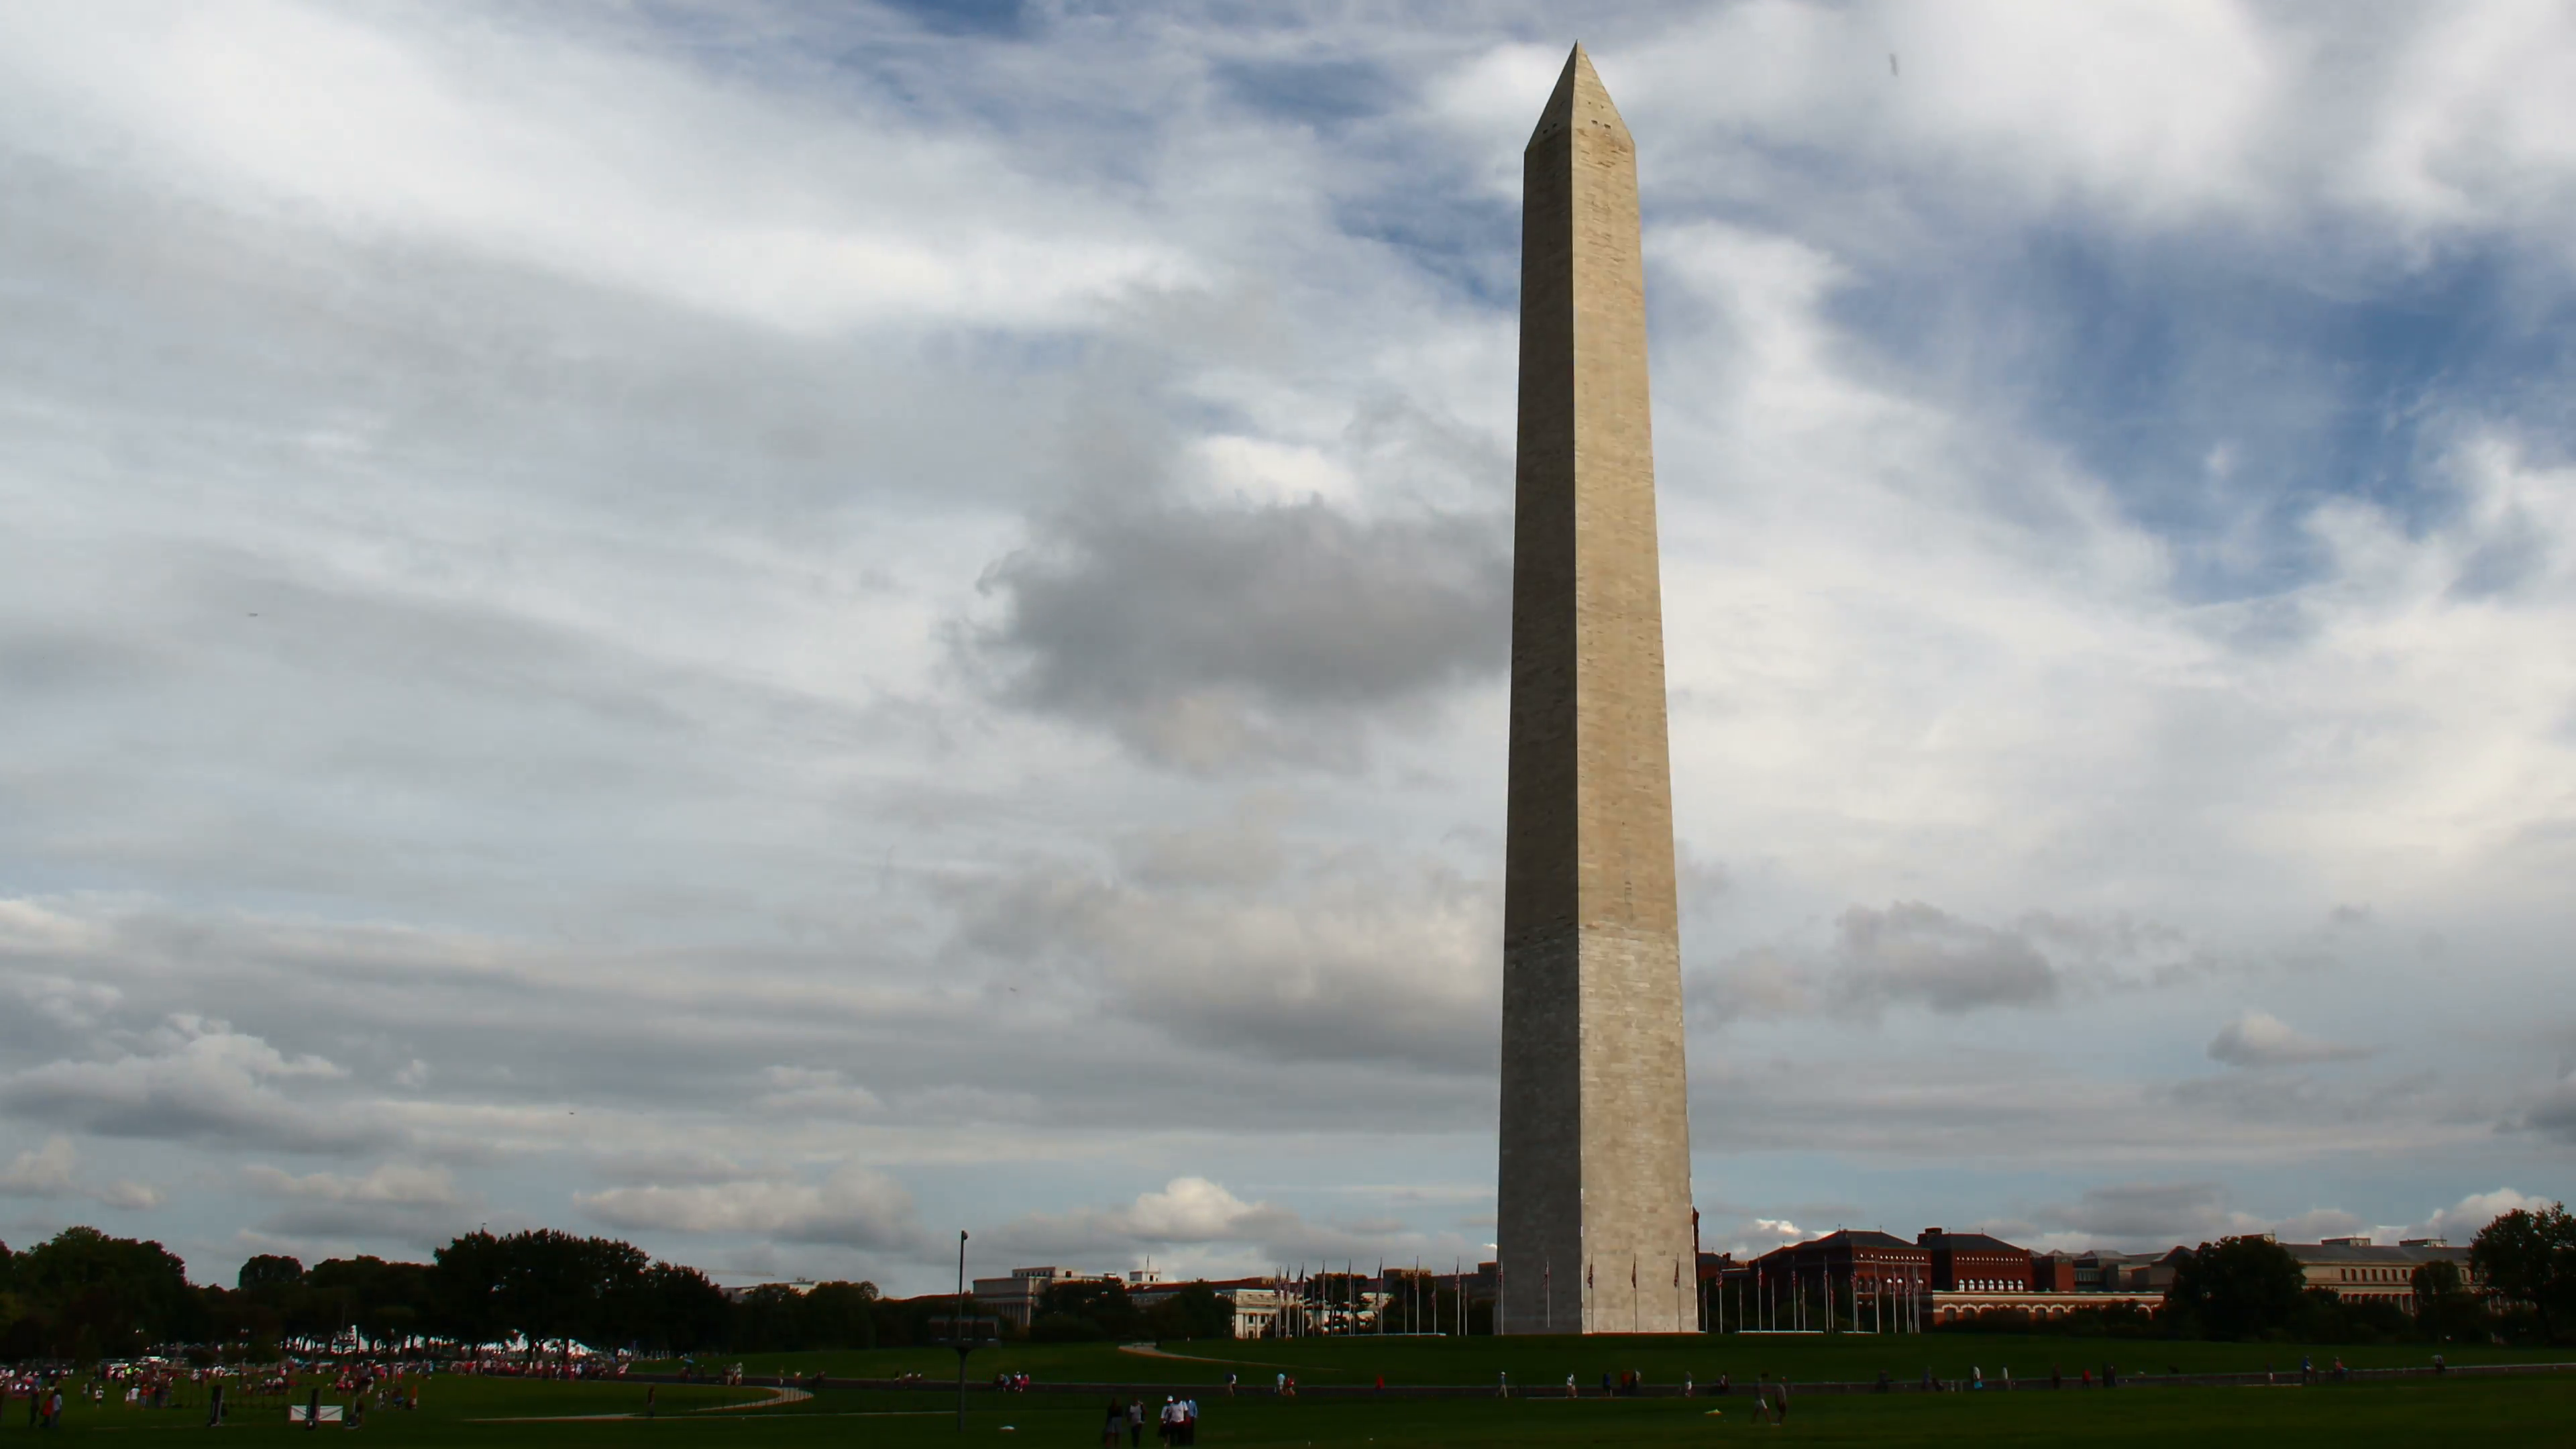 Washington Monument Time-Lapse. Timelapse of the Washington Monument in Washington  D.C. Rendered in UltraHD 4K from high resolution stills. - Washington Monument PNG HD